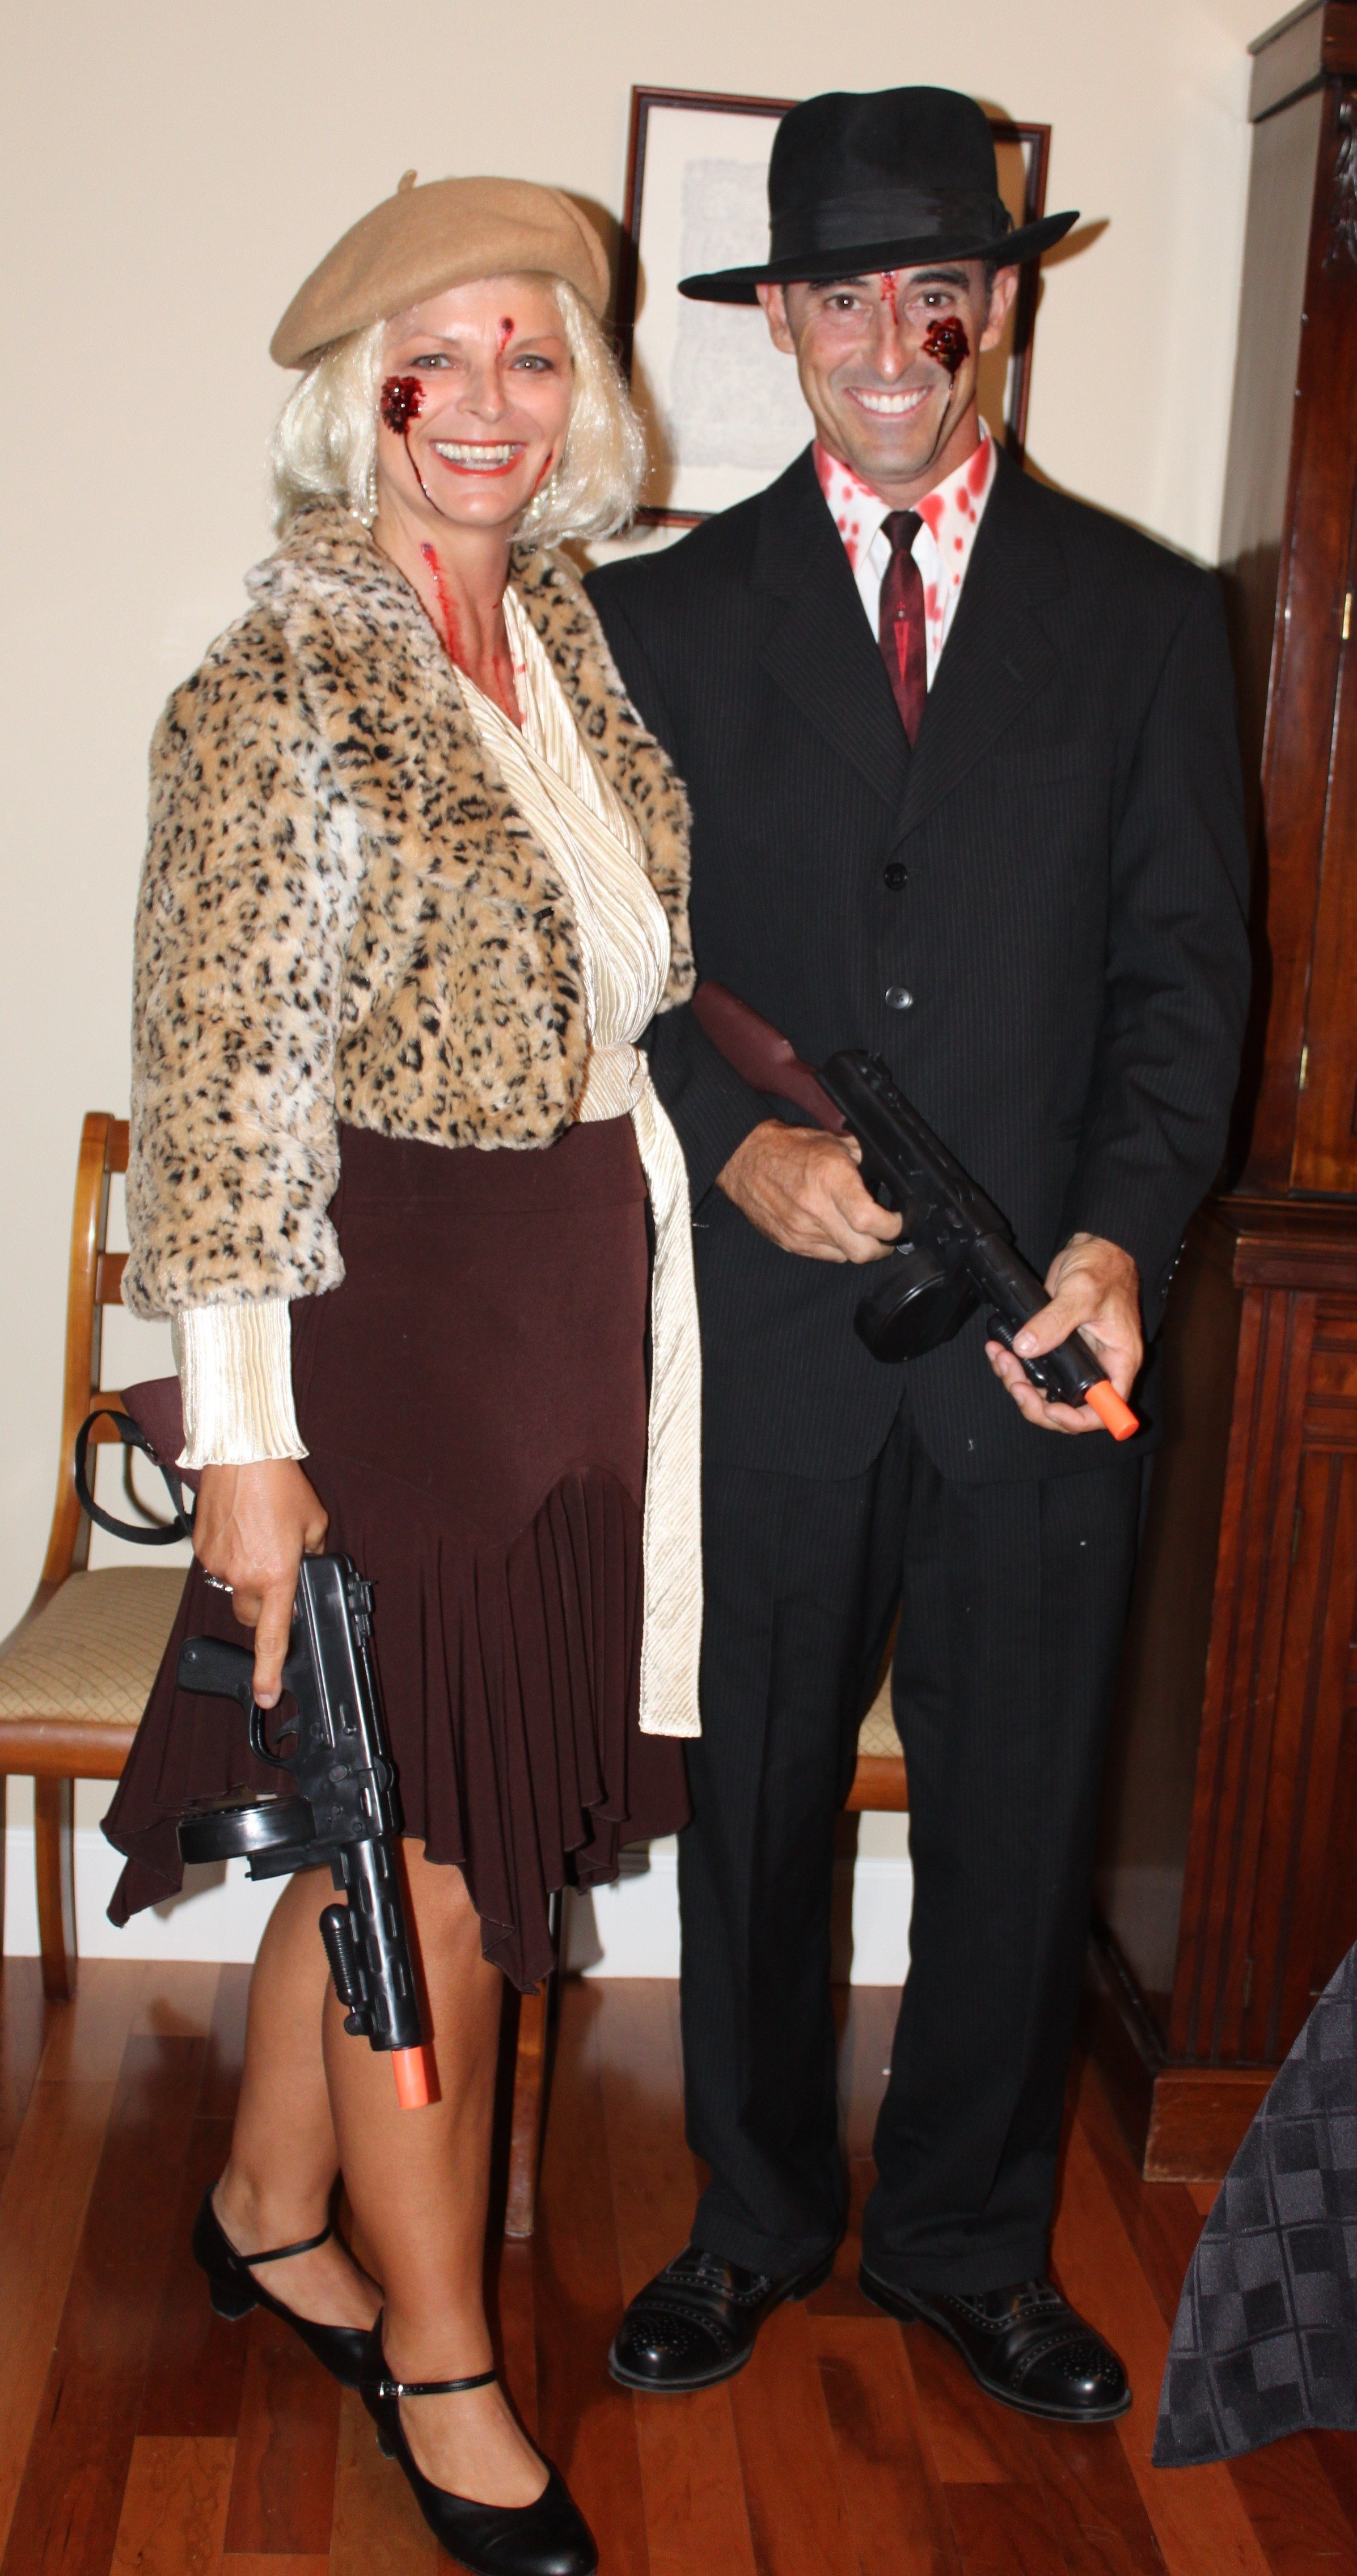 10 Trendy Bonnie And Clyde Costumes Ideas dead bonnie clyde unique costumes pinterest bonnie clyde